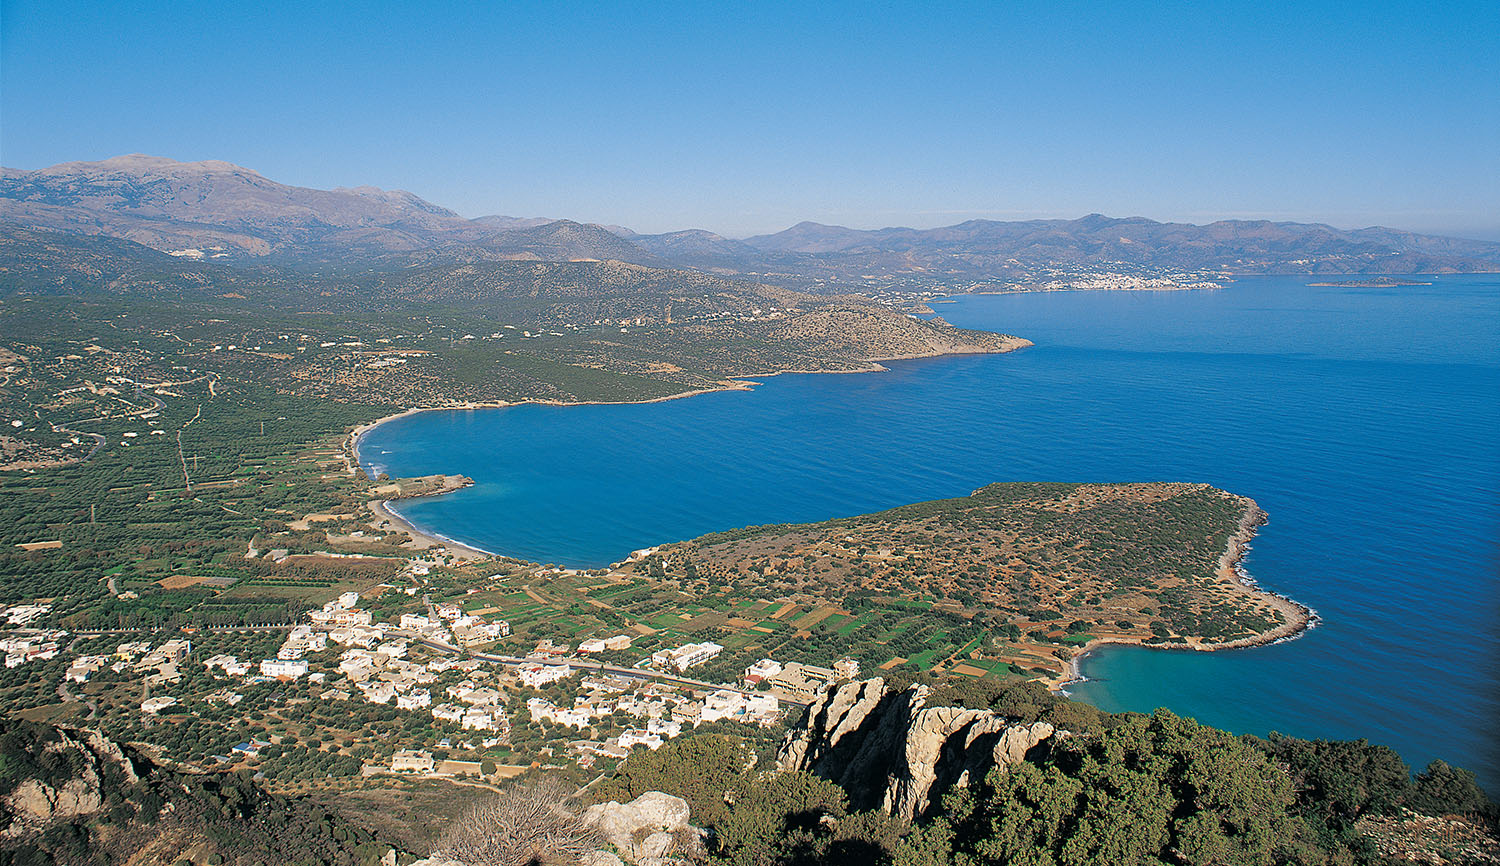 Taxi transfer from Heraklion airport / port to Istro (Kalo Chorio )